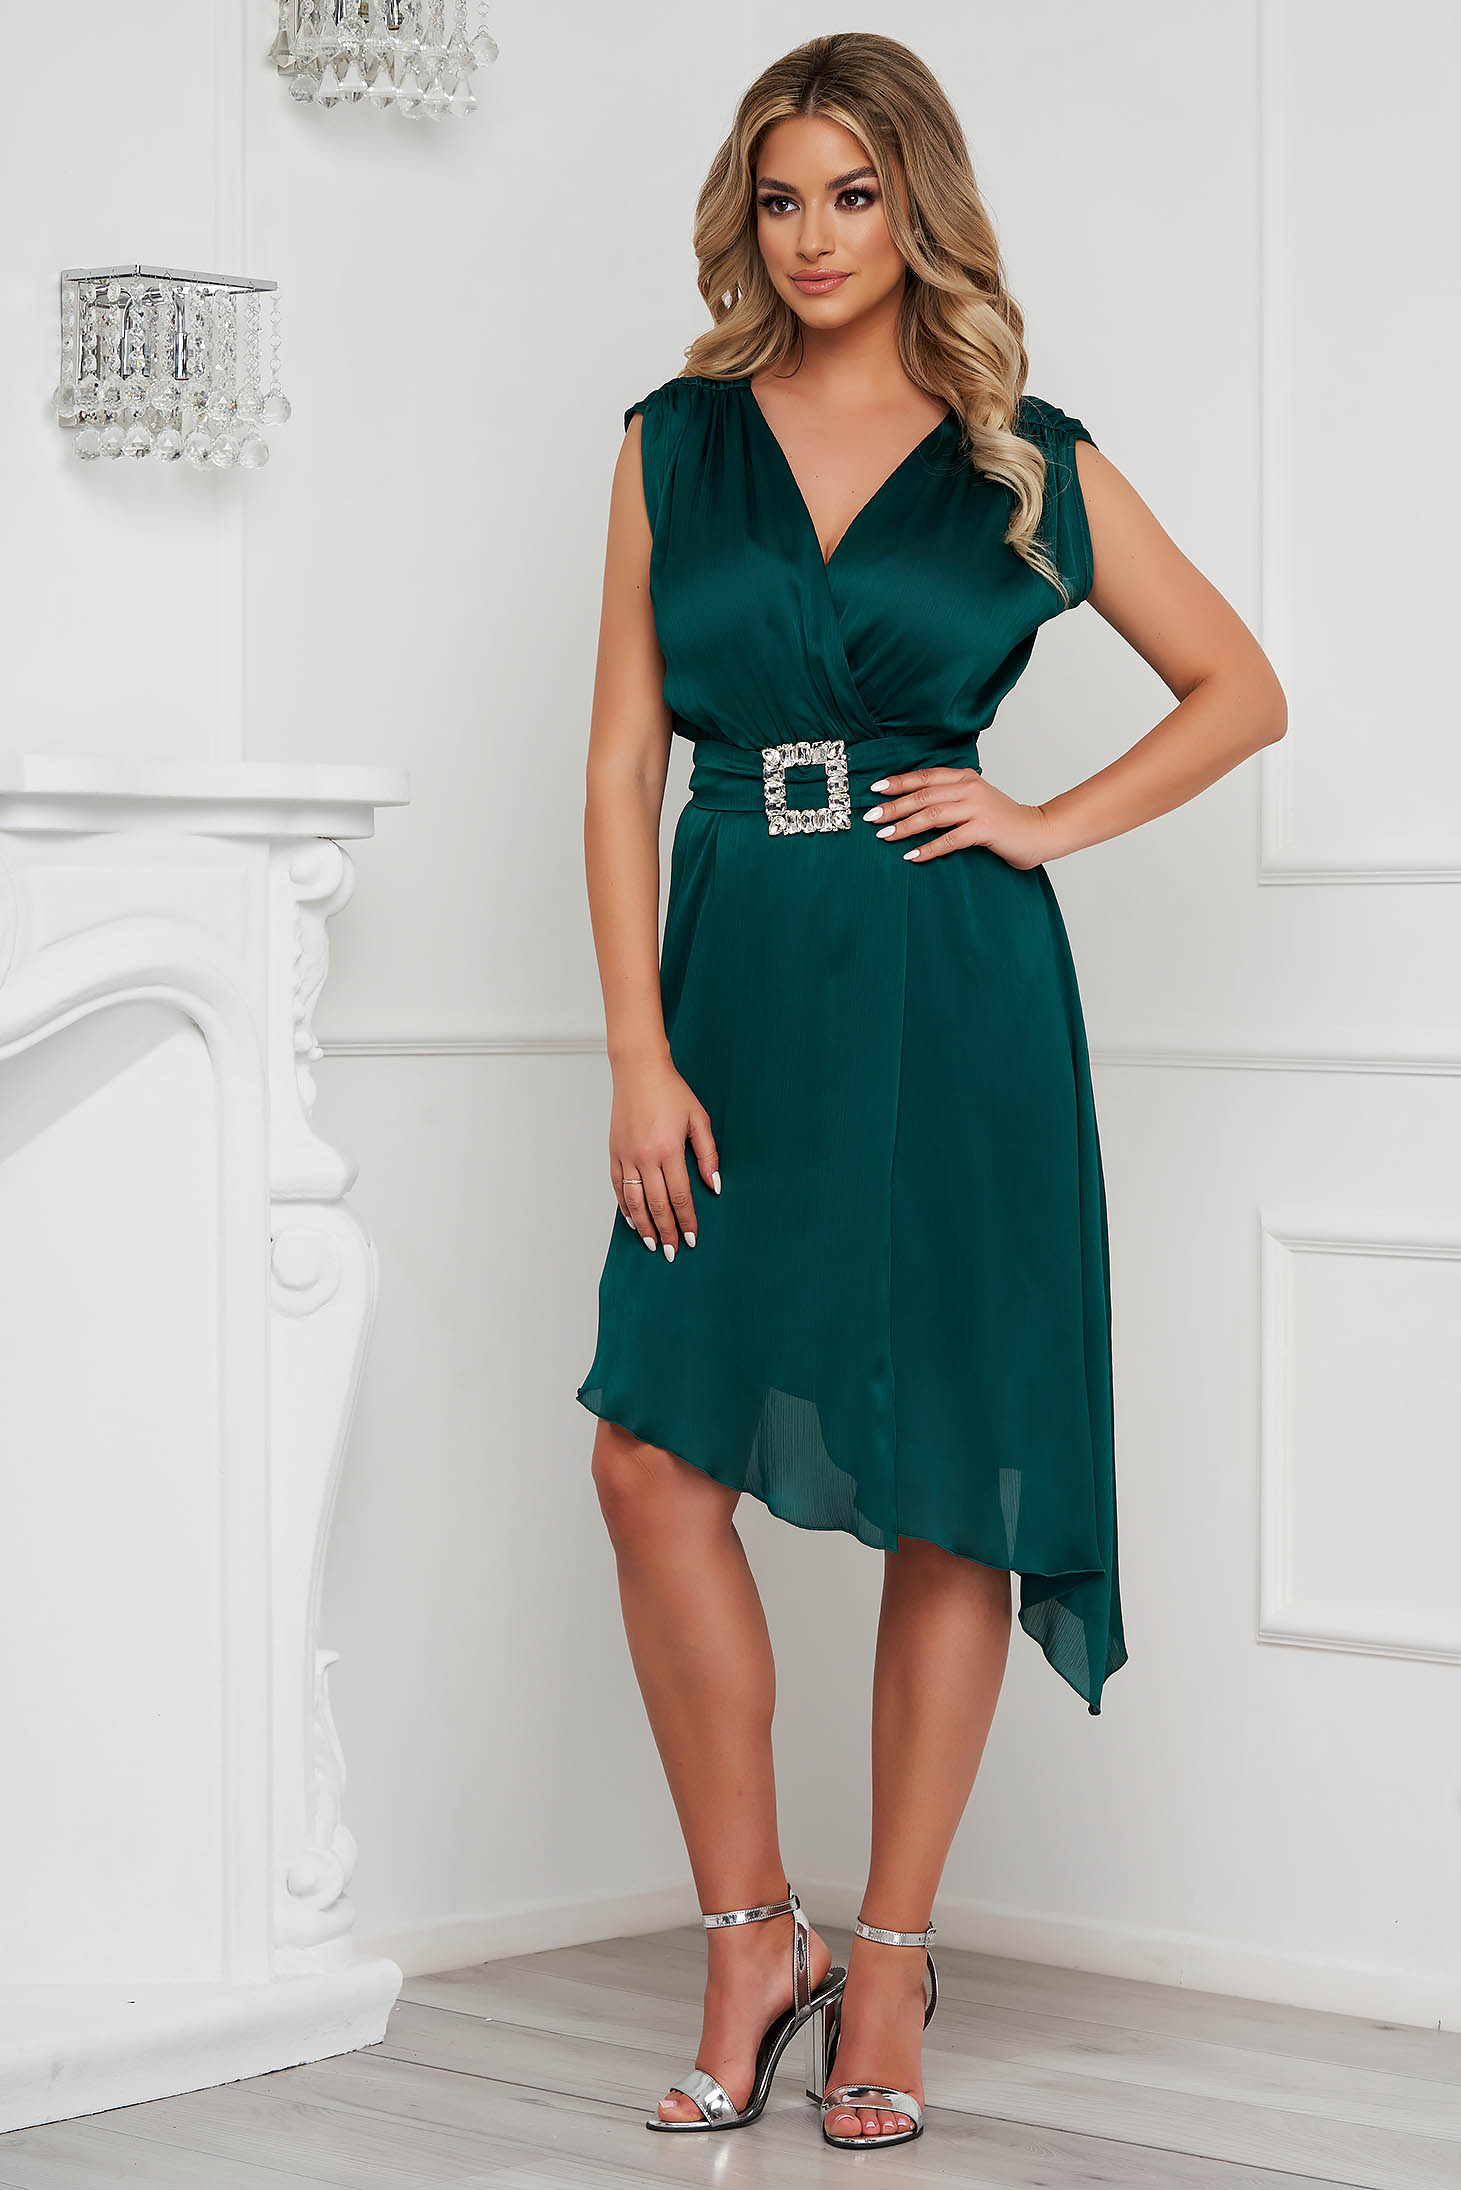 Darkgreen dress elegant asymmetrical cloche voile fabric allure of satin accessorized with tied waistband